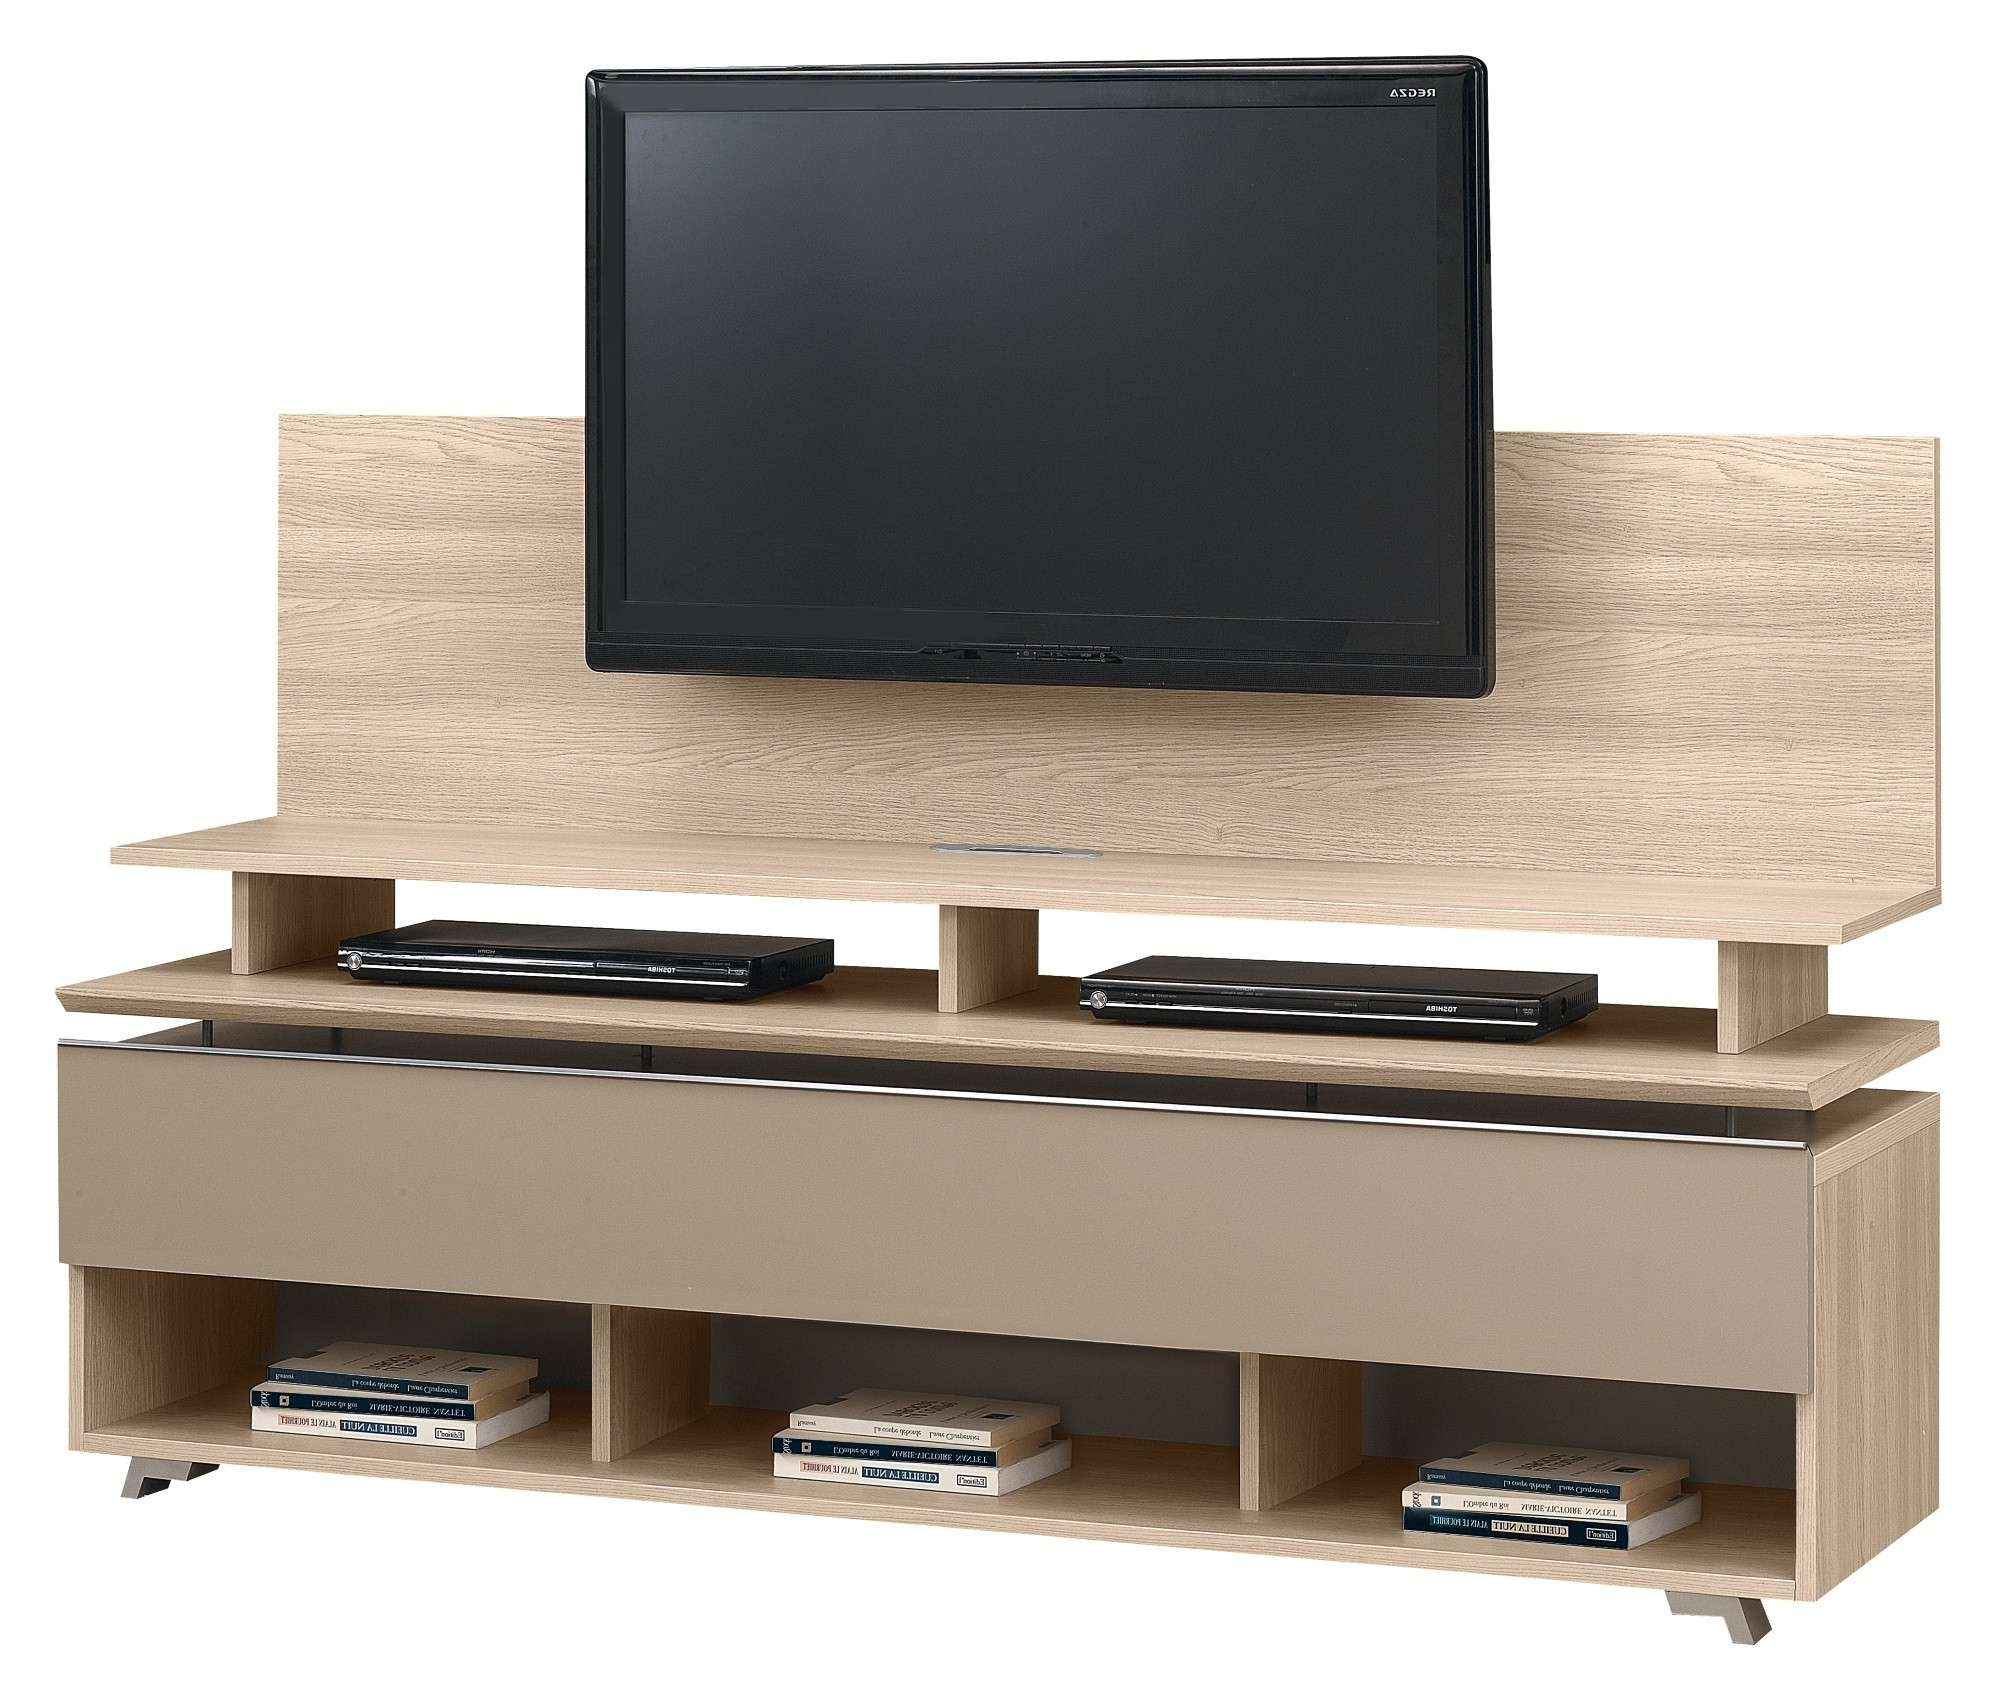 Artigo Light Oak Tv Unit + Tv Stand | Style Our Home With Regard To Light Oak Tv Cabinets (View 2 of 20)